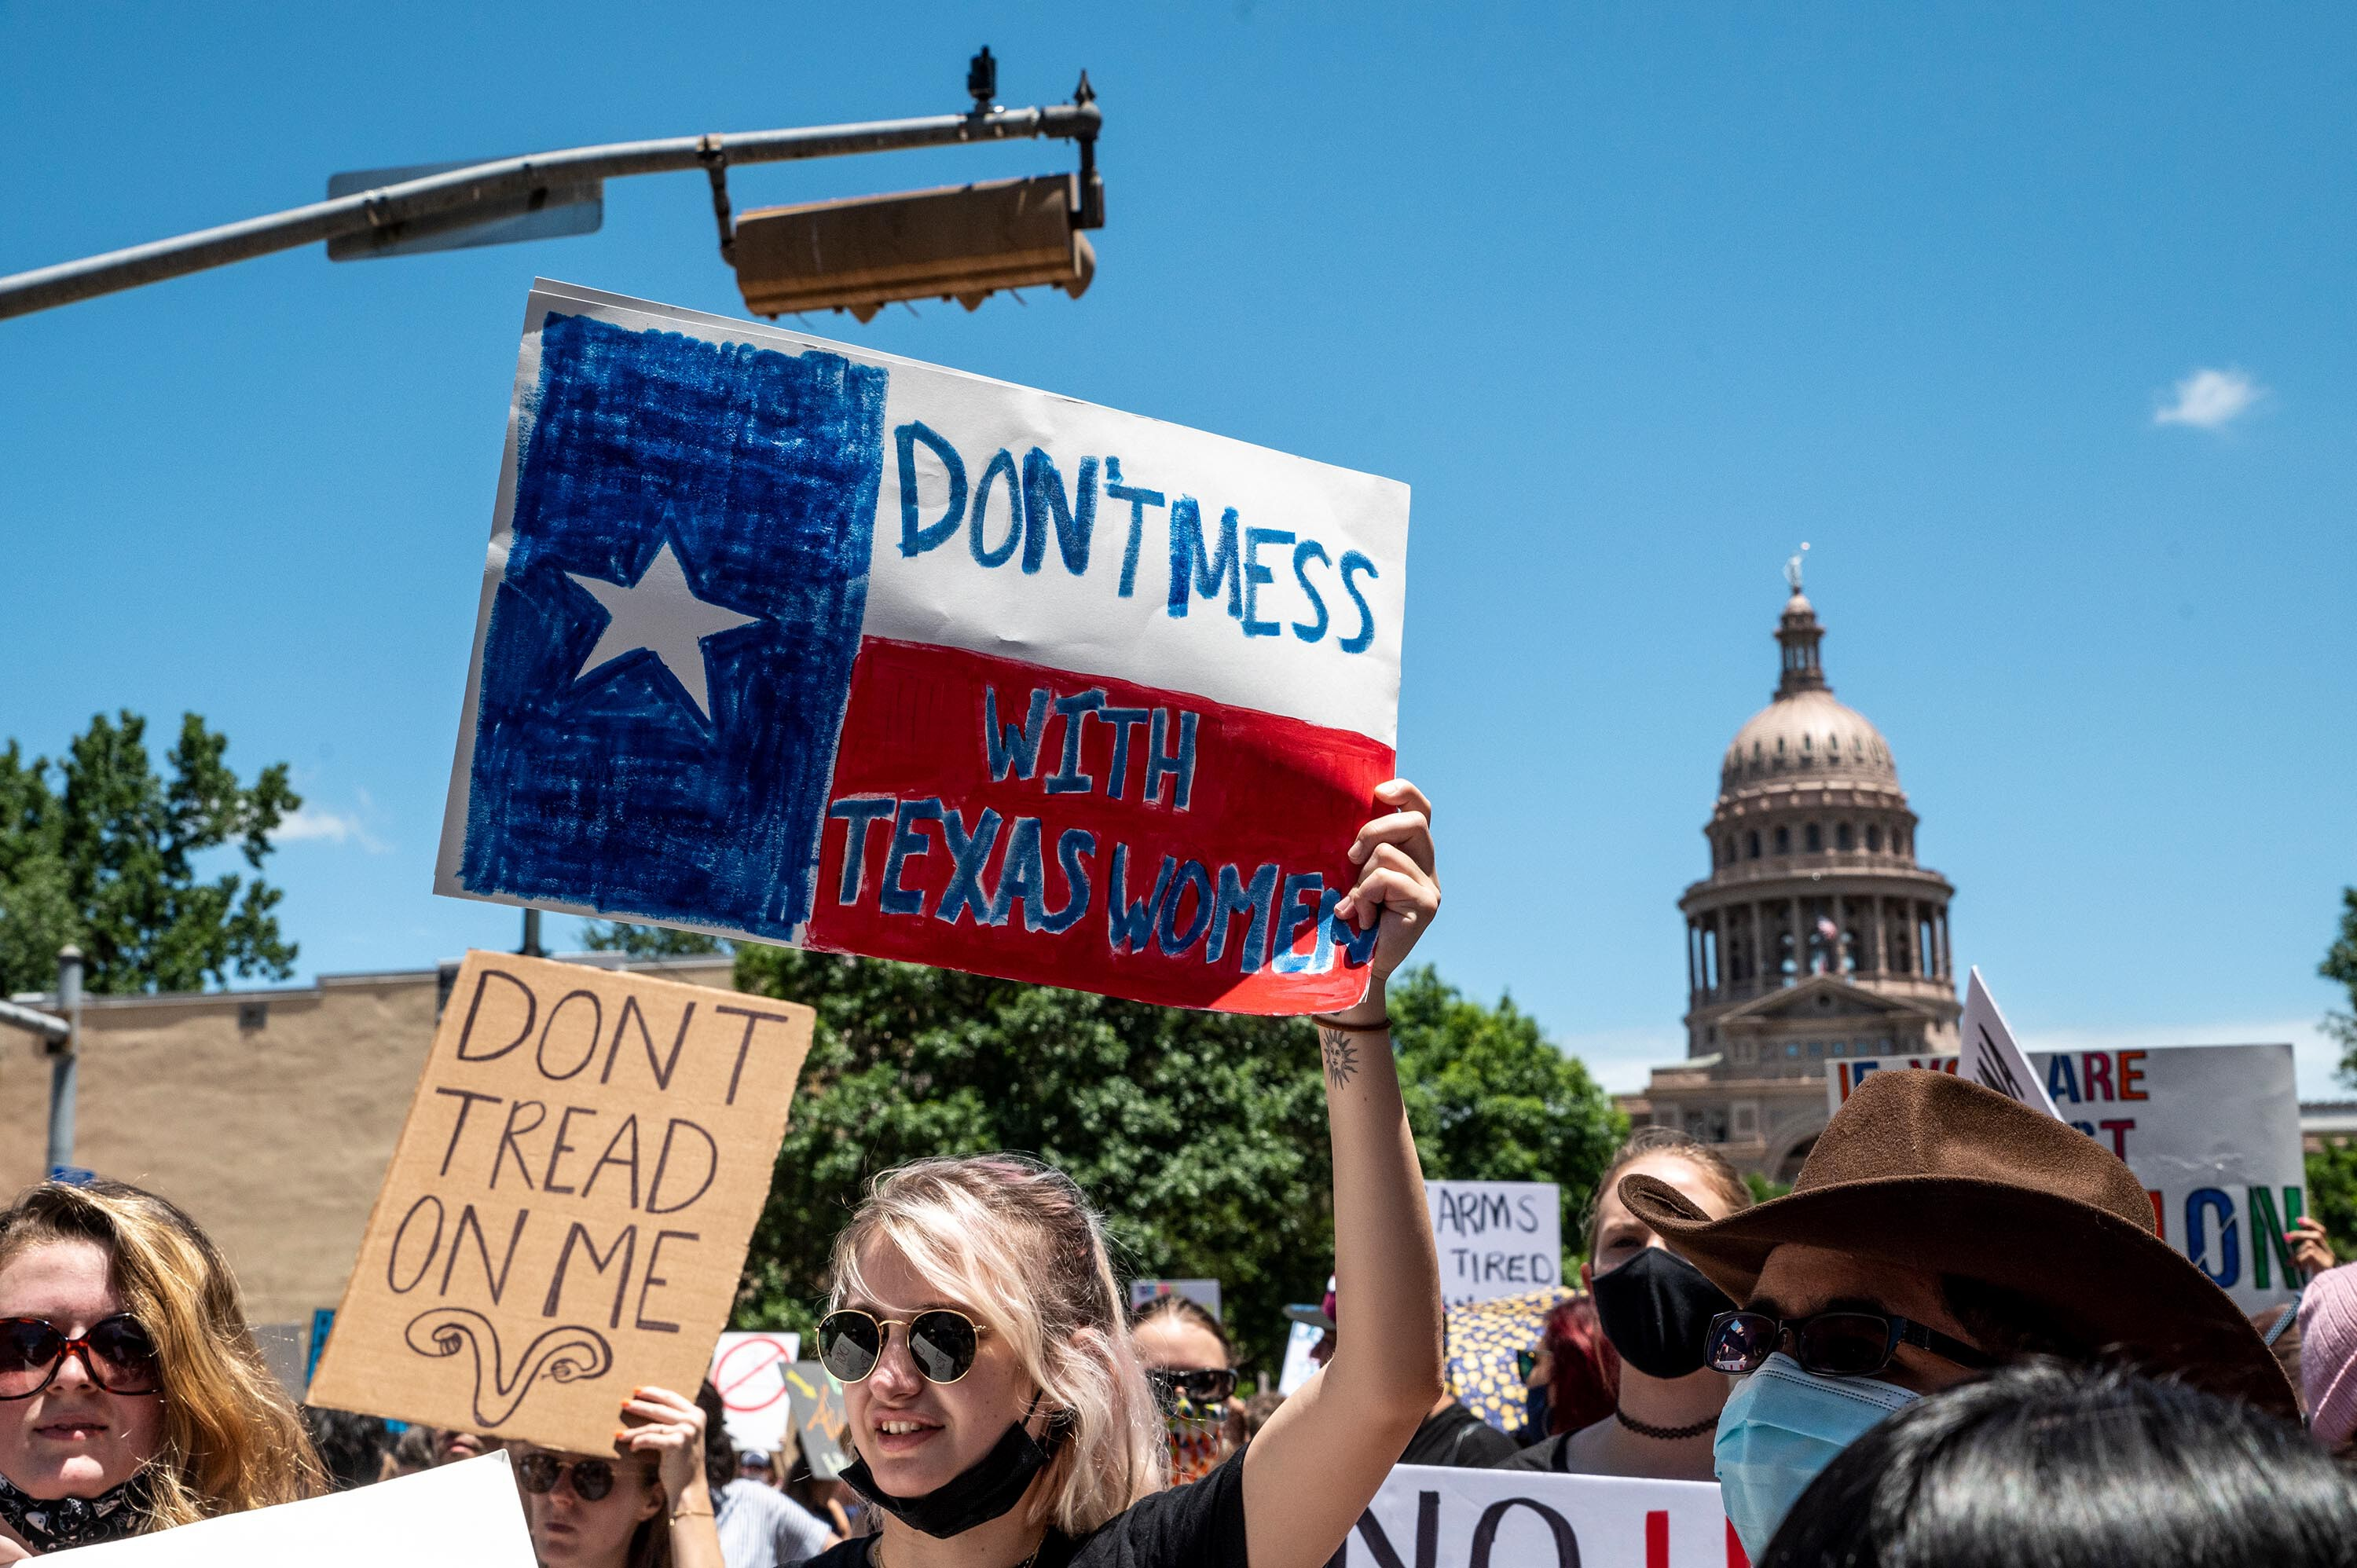 Texas doctor who says he performed abortion sued in first known challenges under new law